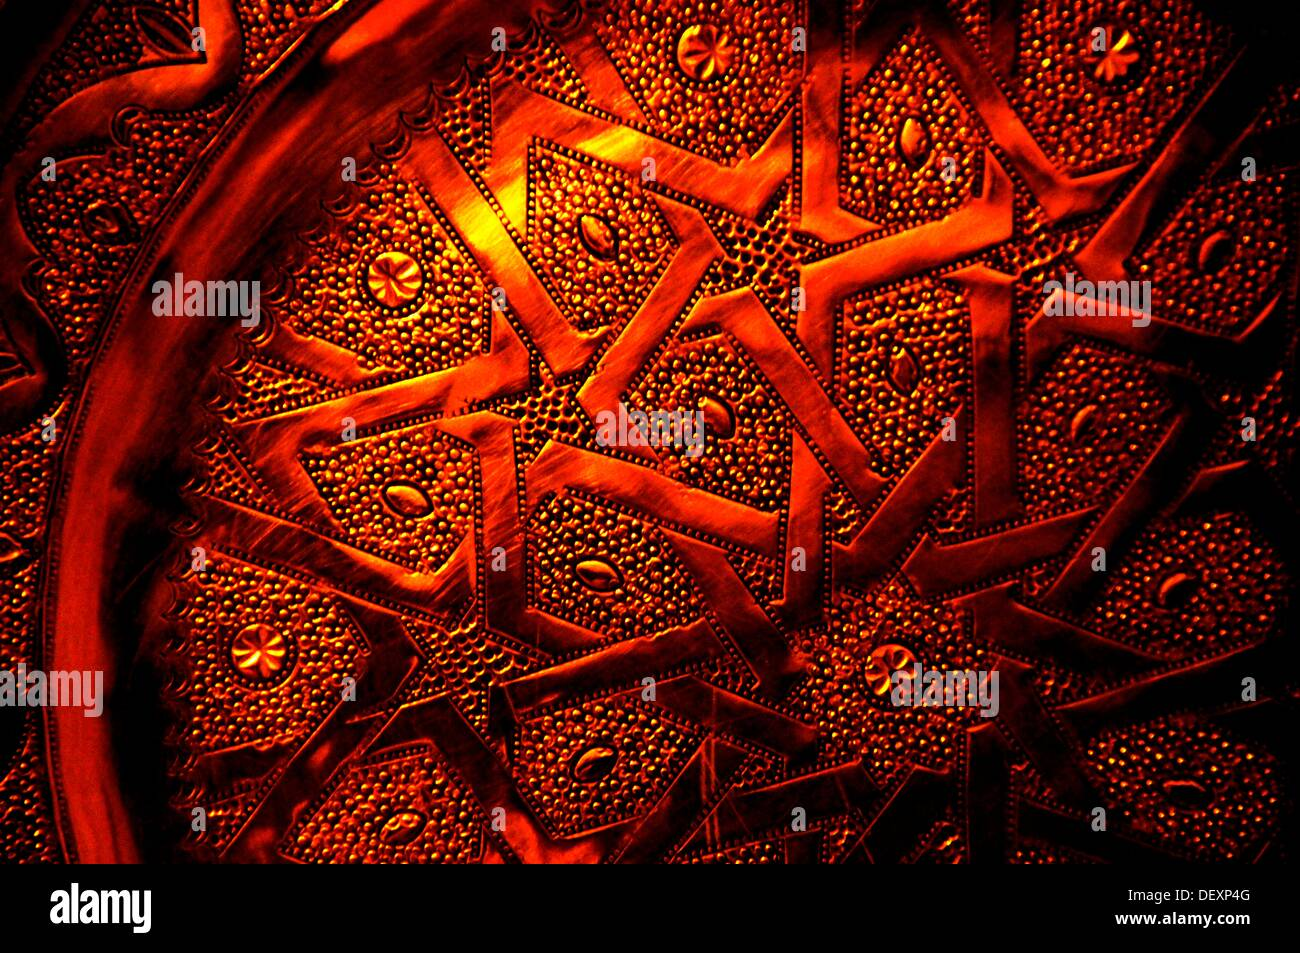 Detail of a hand made copper plate, Morocco - Stock Image